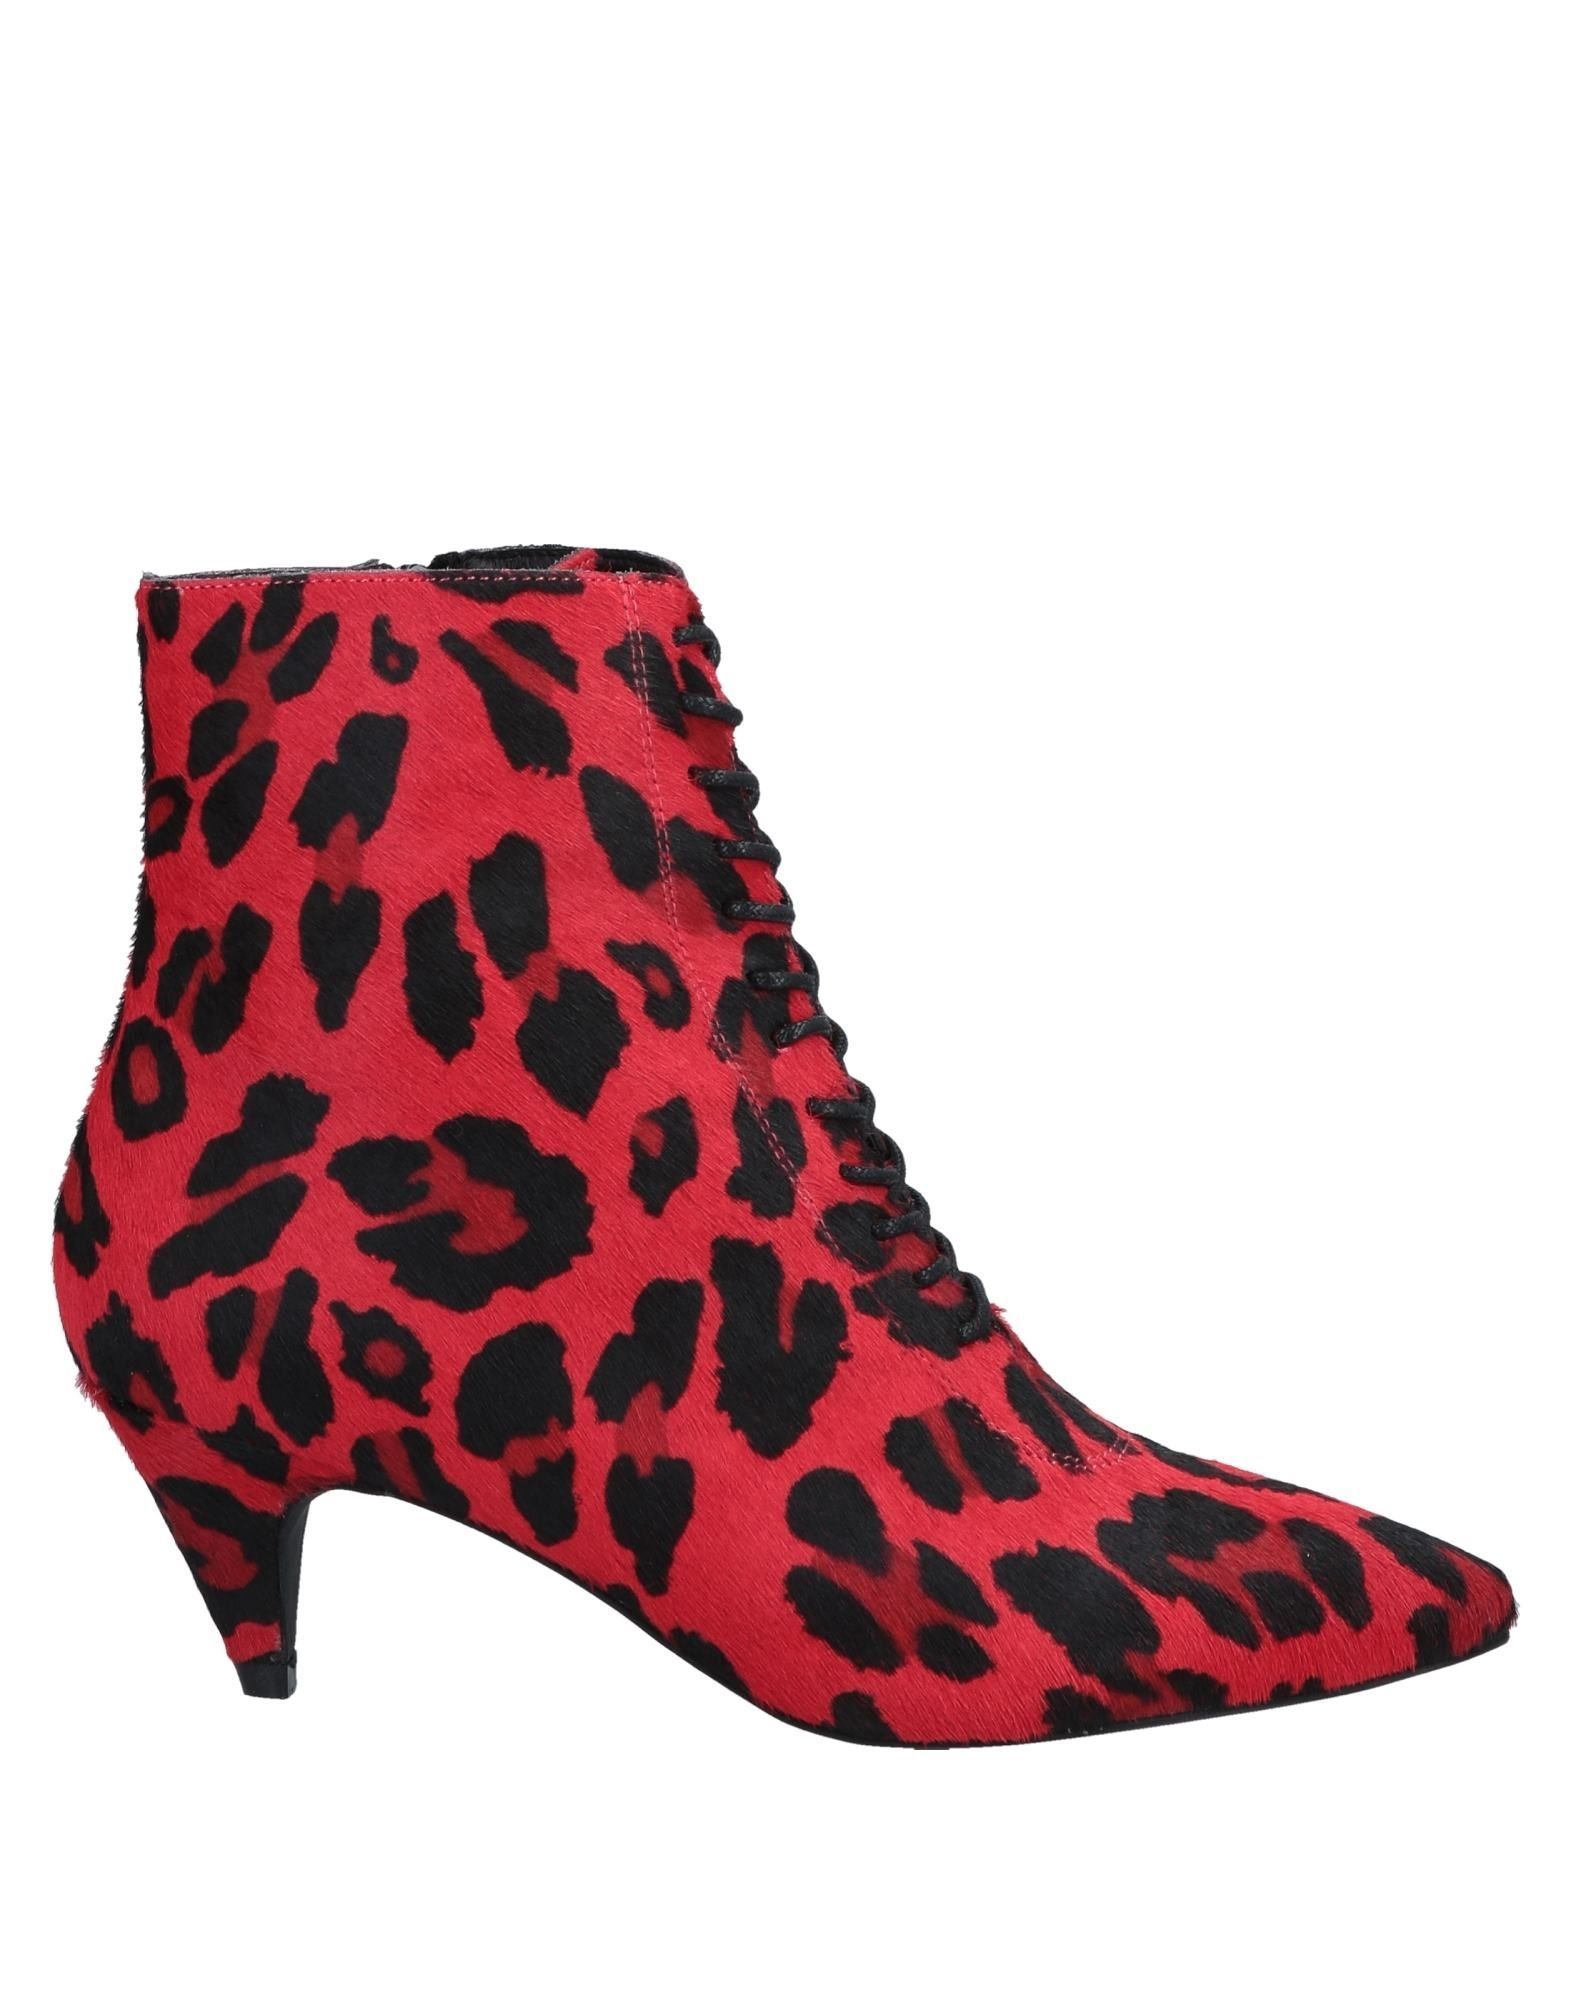 FOOTWEAR Jeffrey Campbell Red Woman Leather